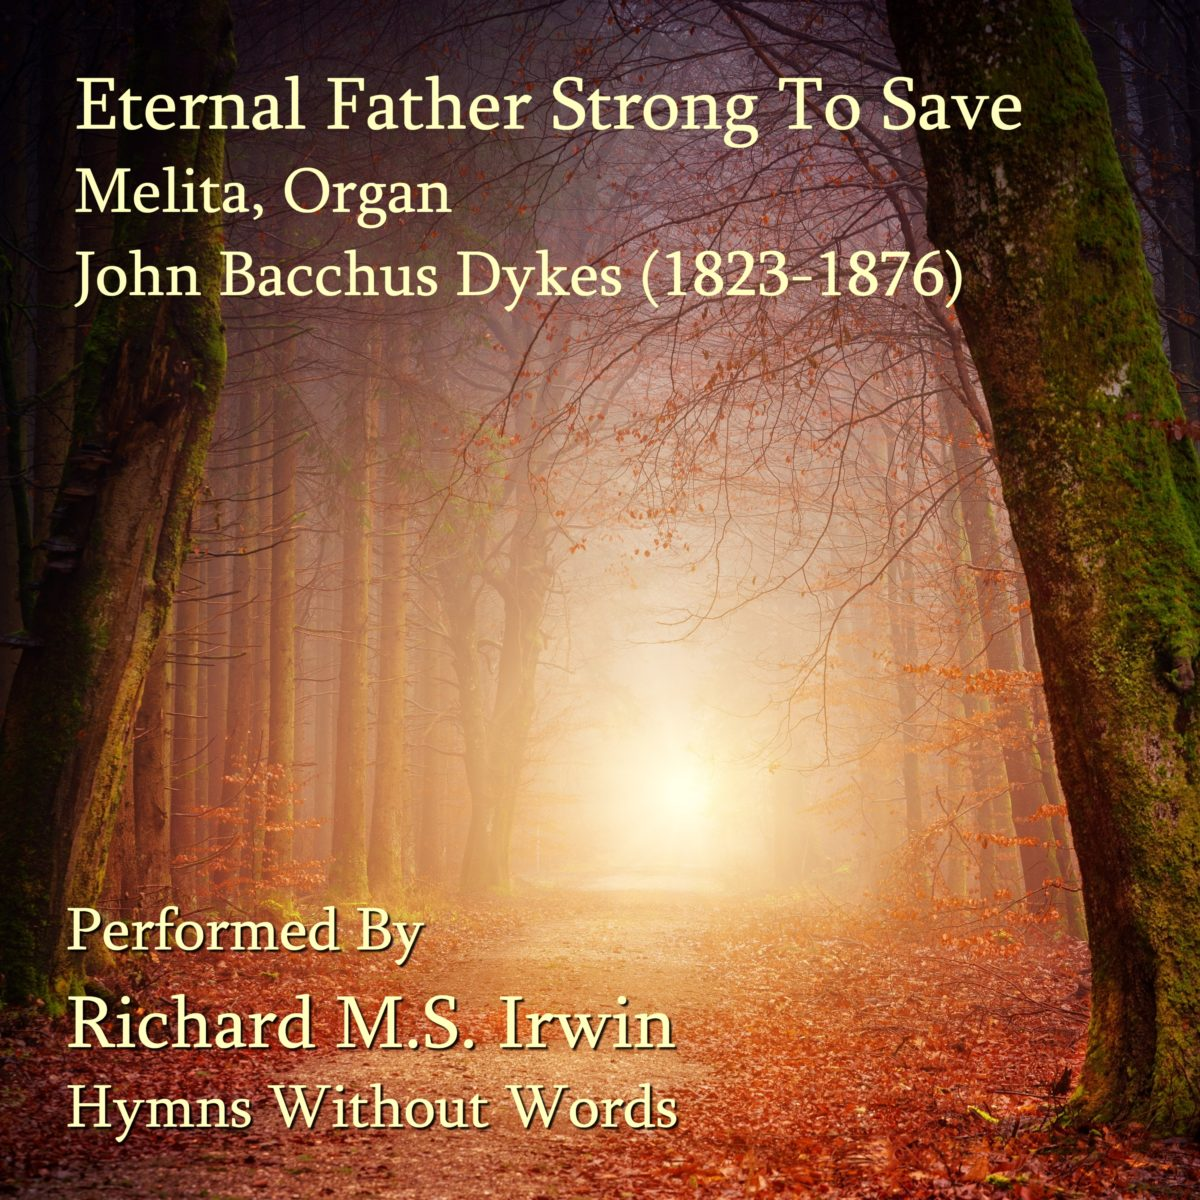 Eternal Father Strong To Save (Melita, Organ & Trumpet Descant, 4 Verses)